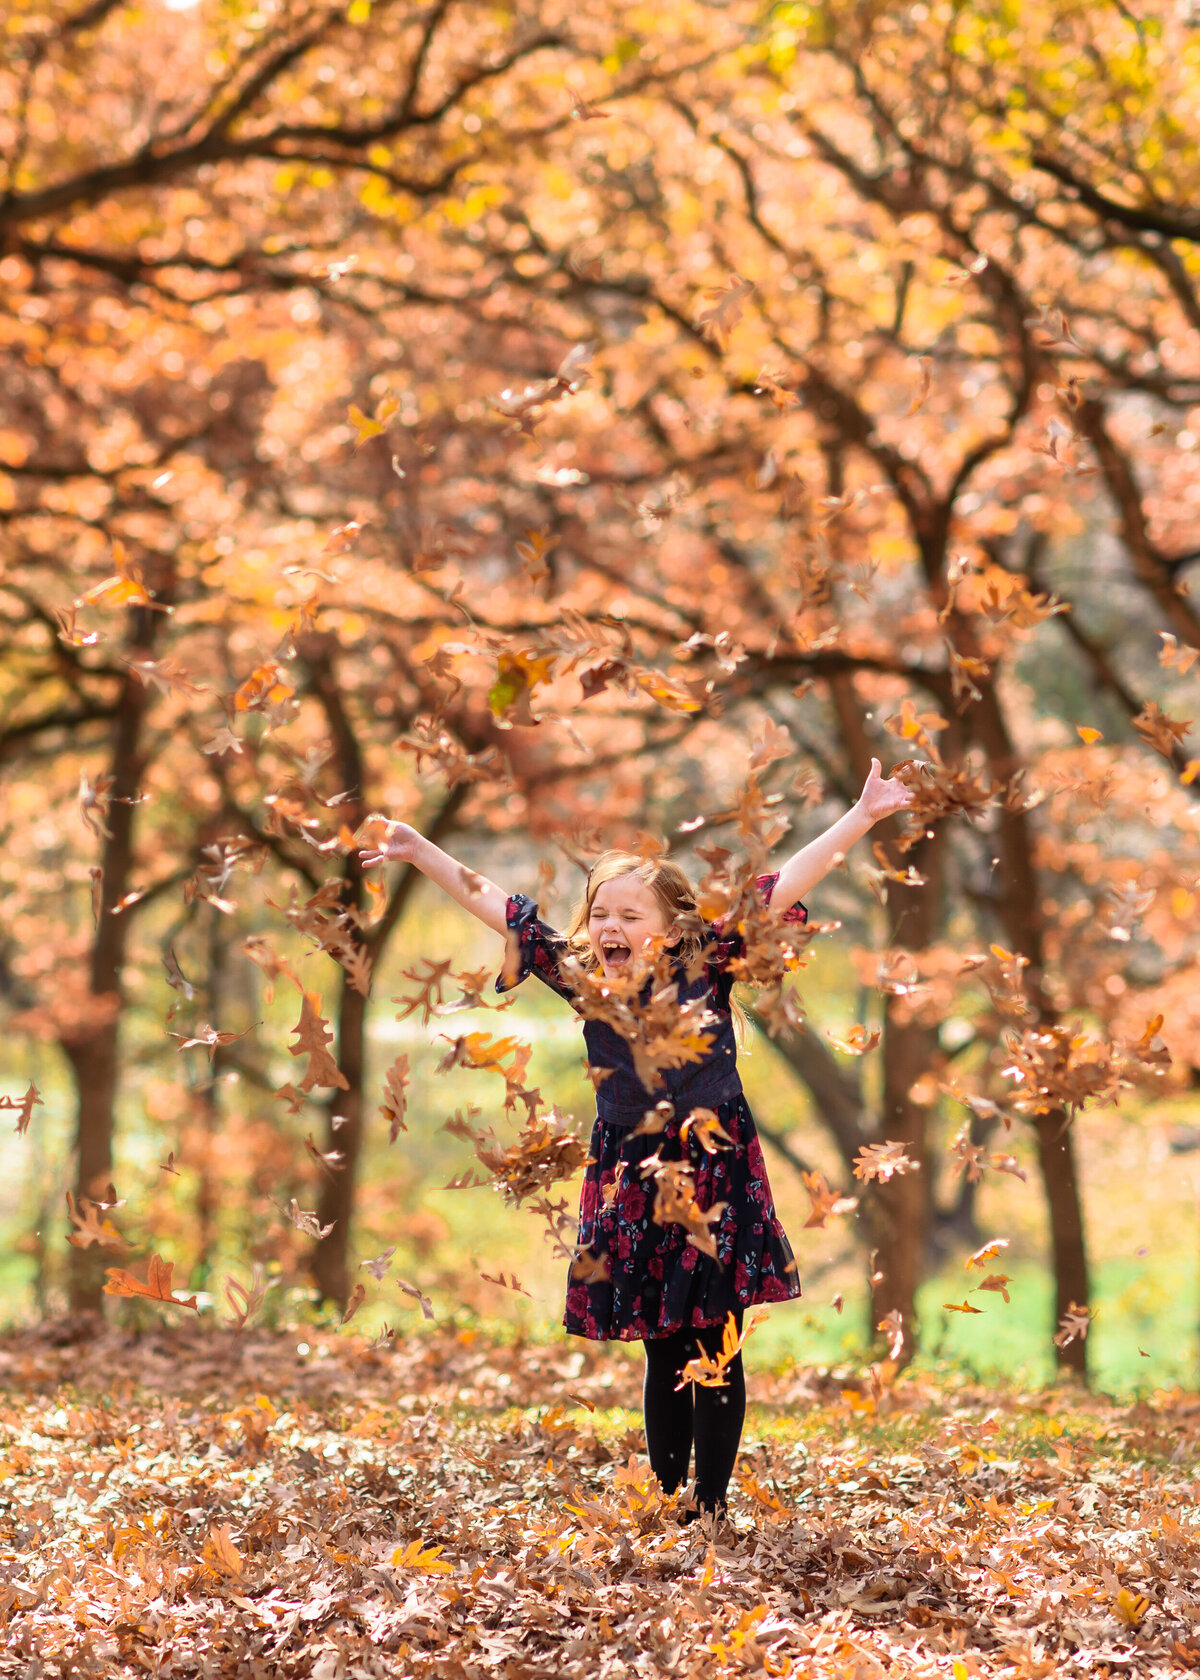 Des-Moines-Iowa-Family-Photographer-Theresa-Schumacher-Photography-Fall-Park-Girl